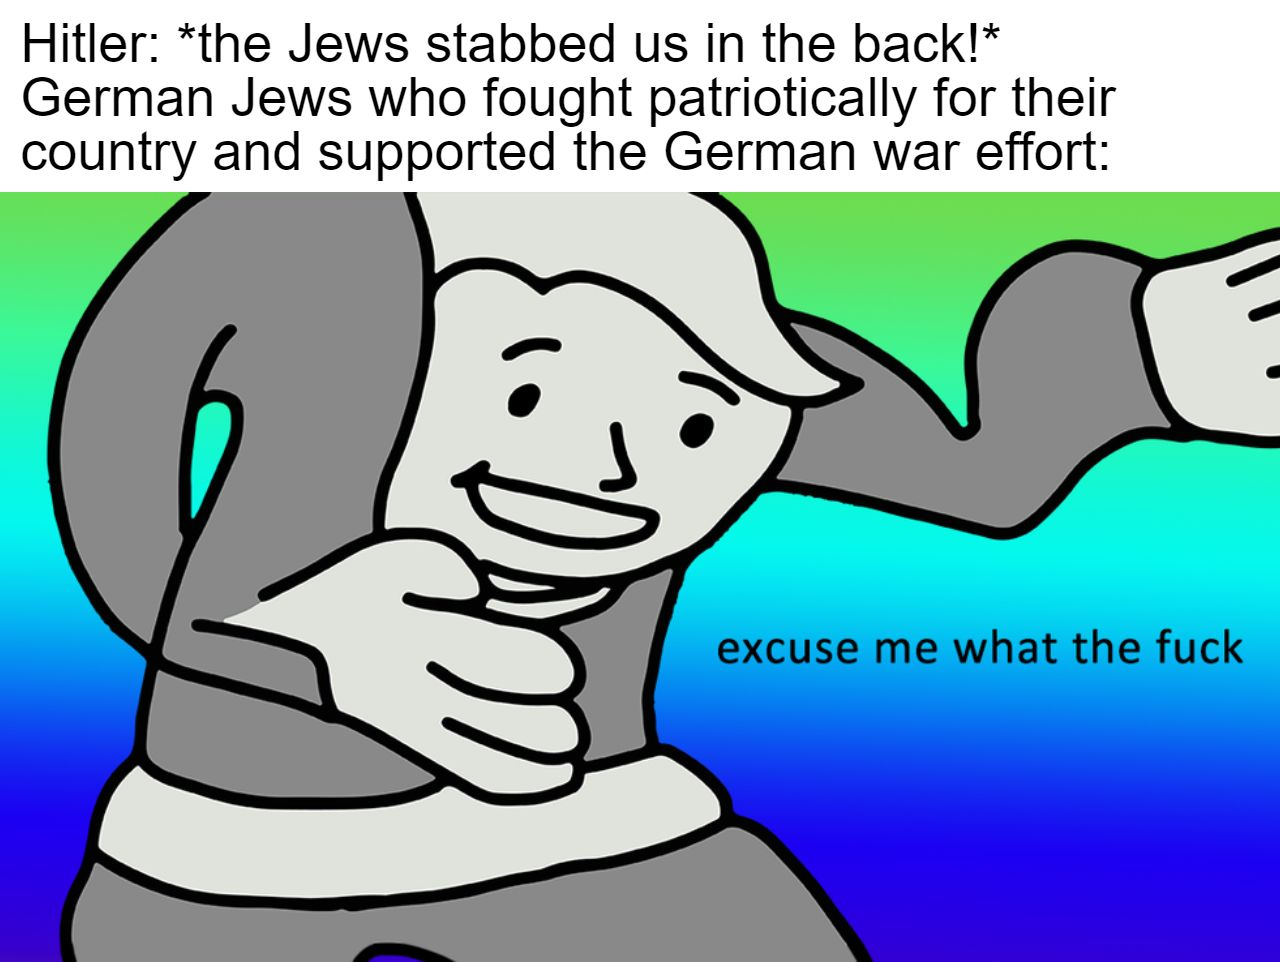 """12,000 German Jews soldiers died and 18,000 were rewarded the Iron Cross. It is absolutely astonishing how Hitler and other """"stab-in-the-back"""" believers believed the Jews stabbed them in the back"""